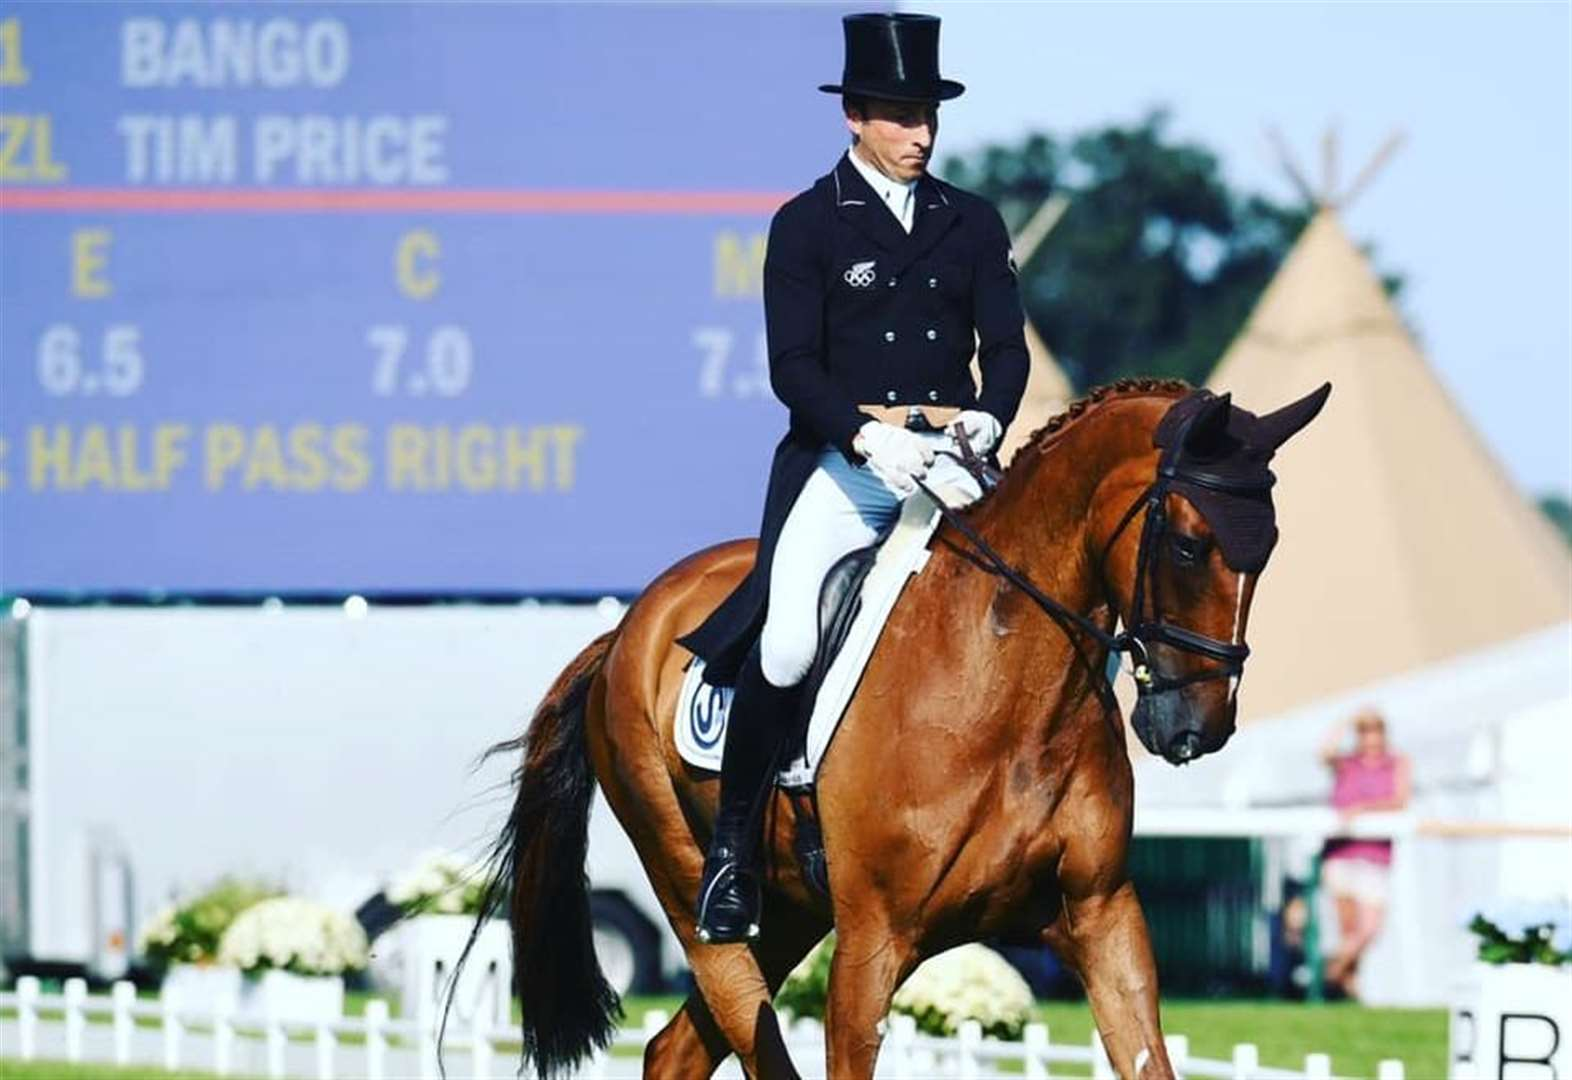 Burghley Horse Trials 2018 winner Tim Price to kick off dressage competition in first day of event at Burghley Houe near Stamford today